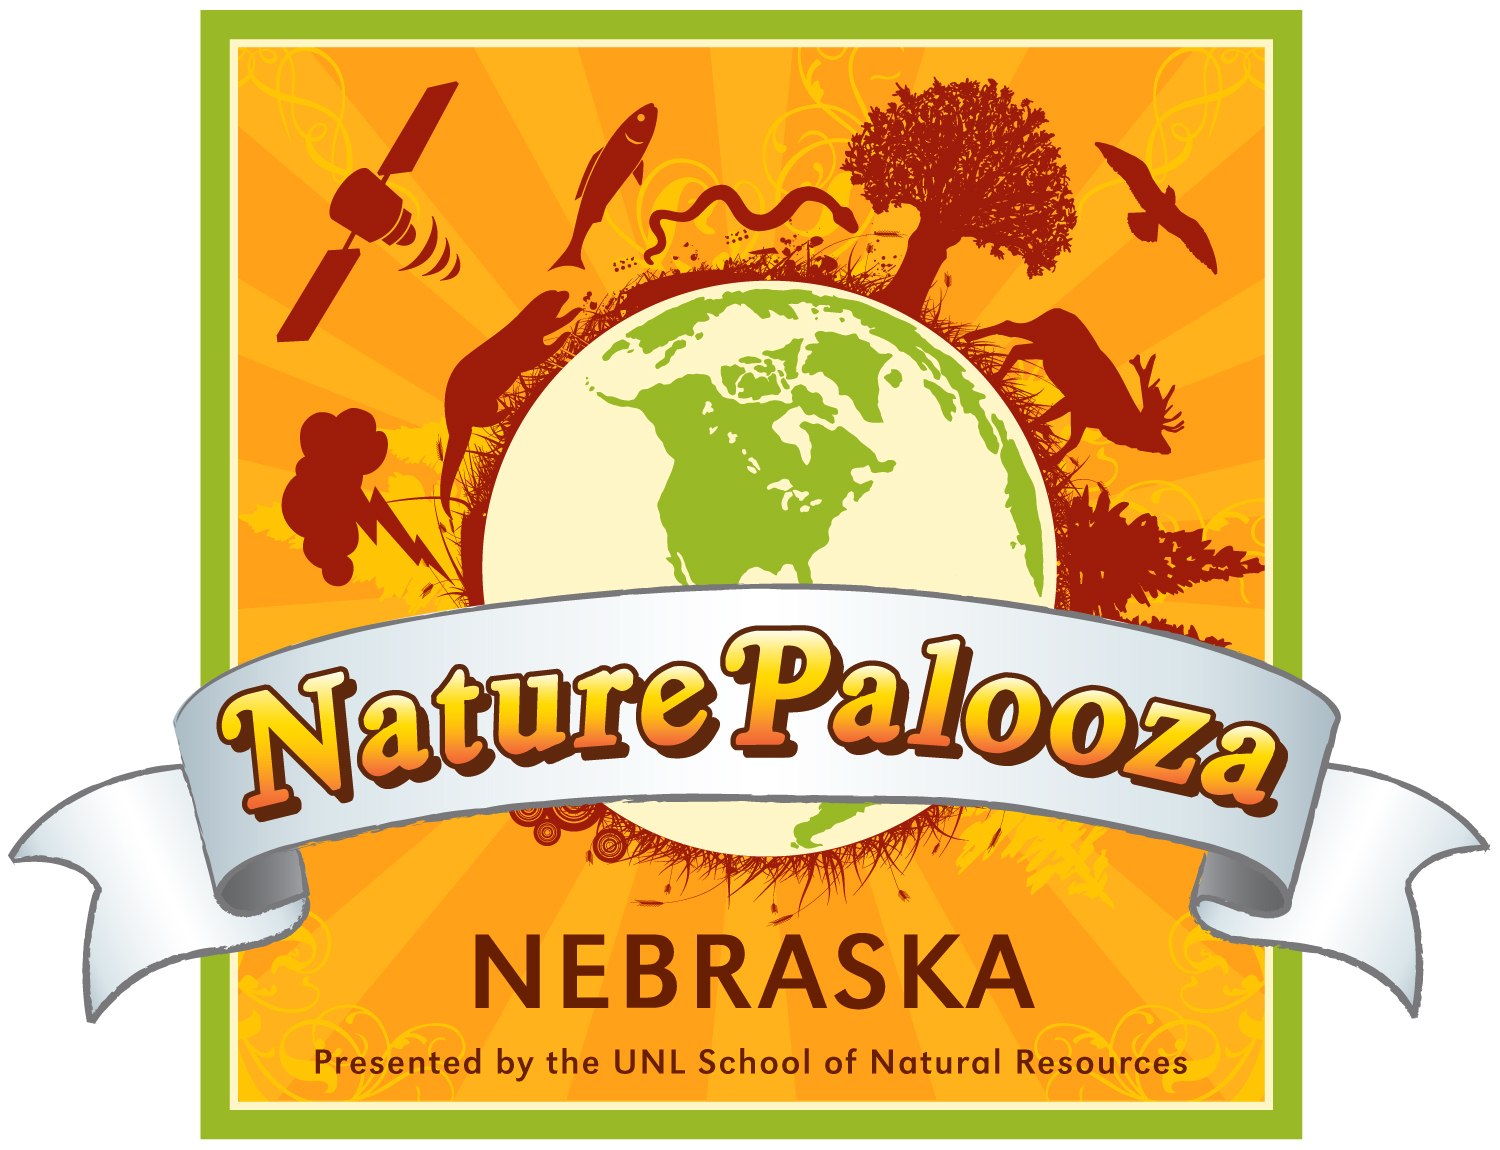 NaturePalooza Nebraska will be Nov. 4 at Morrill Hall.